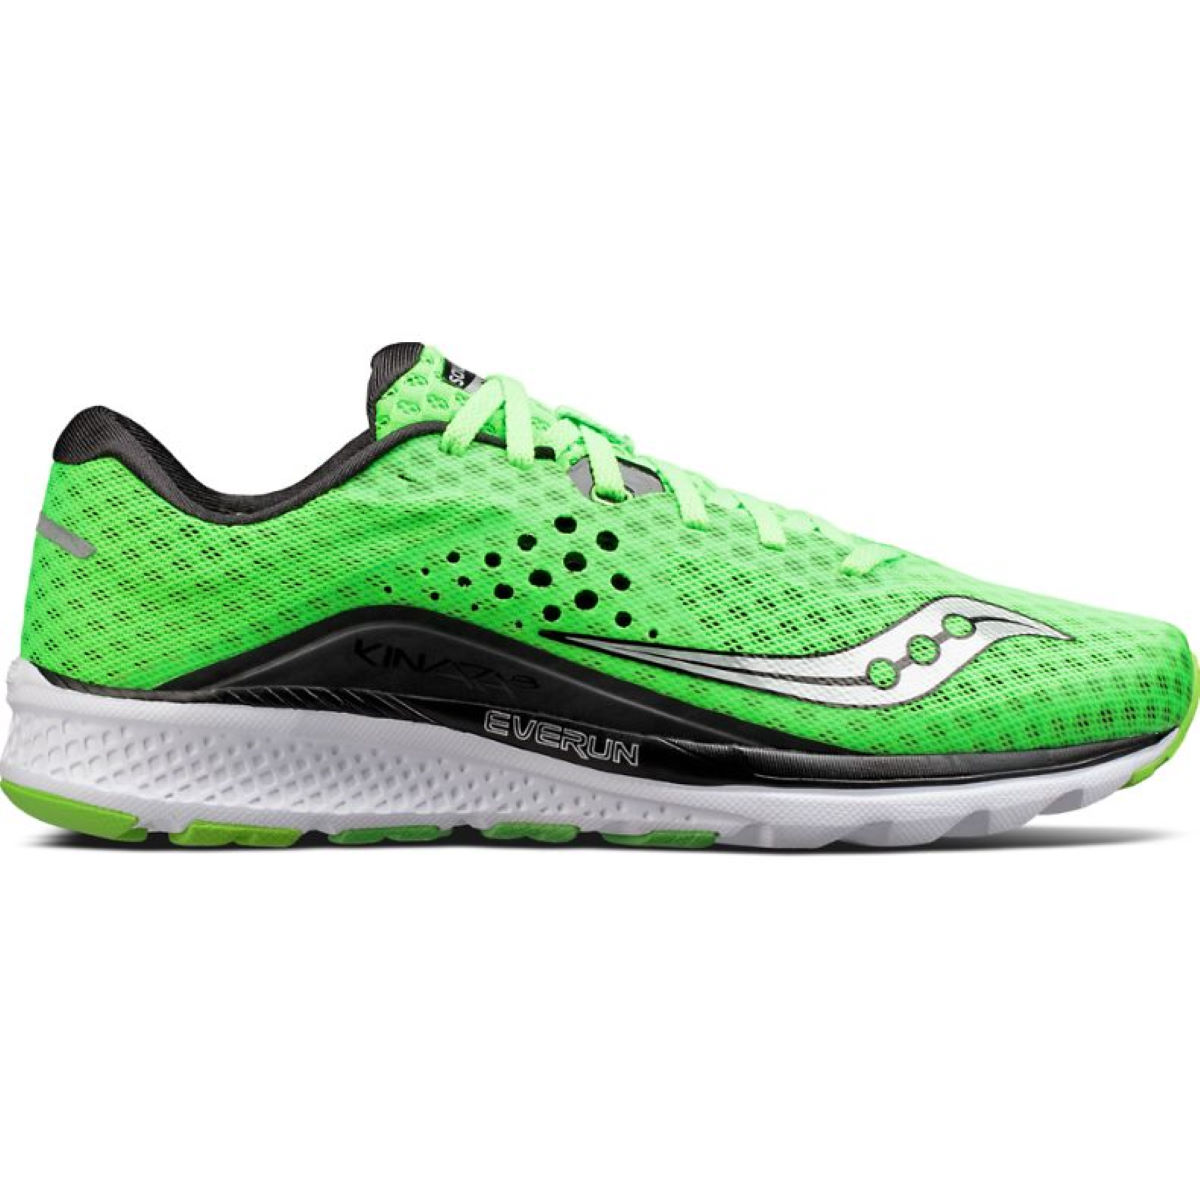 Saucony Kinvara 8 Shoes  - 软垫运动鞋